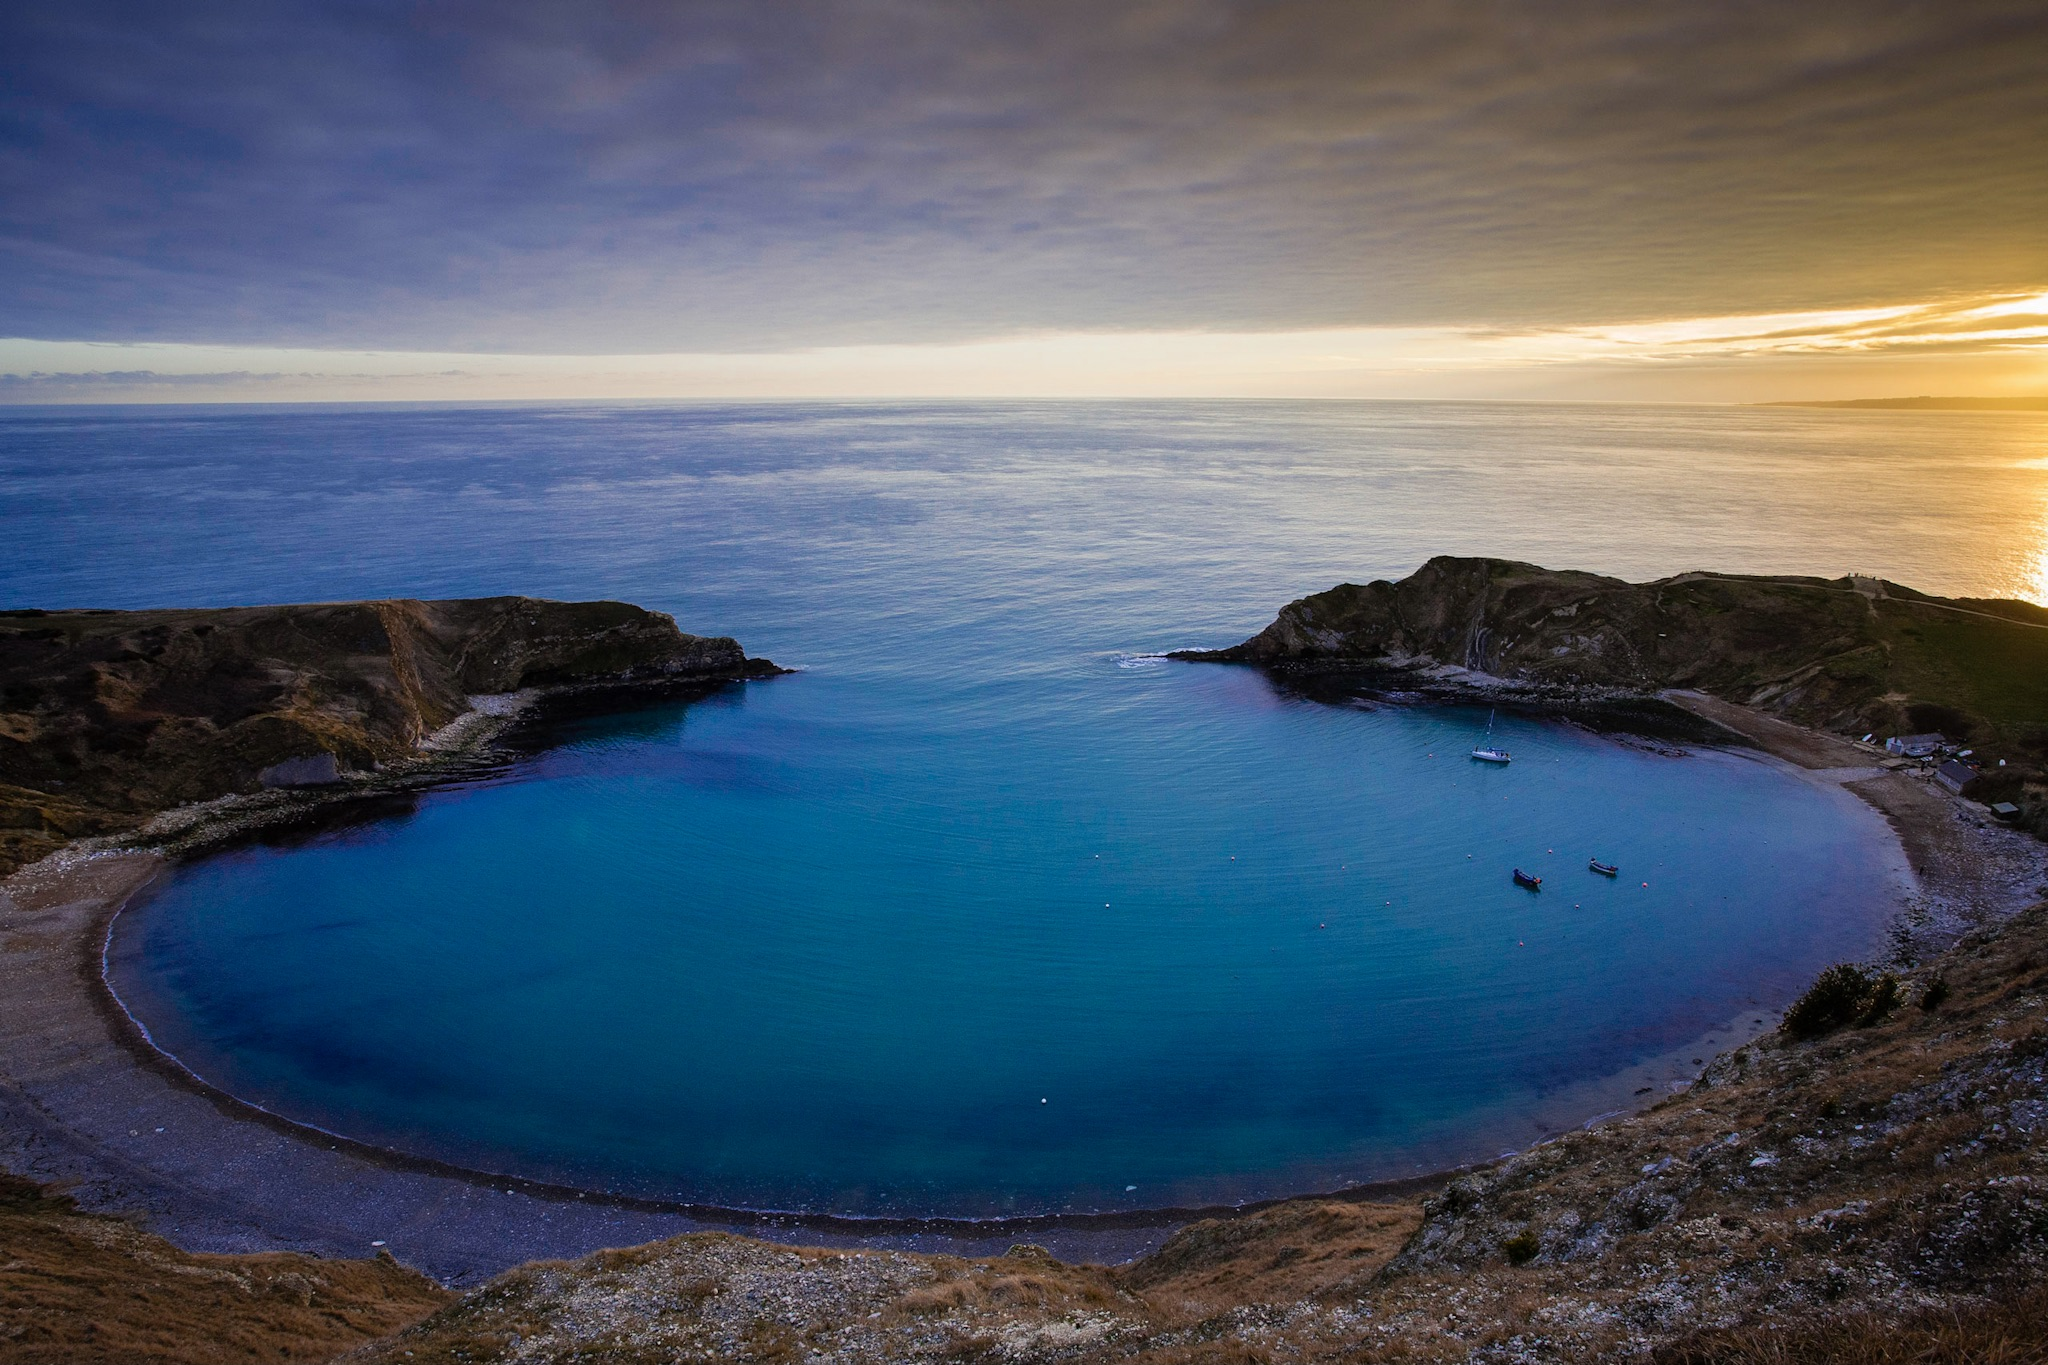 The picture of Lulworth Cove at sunset.